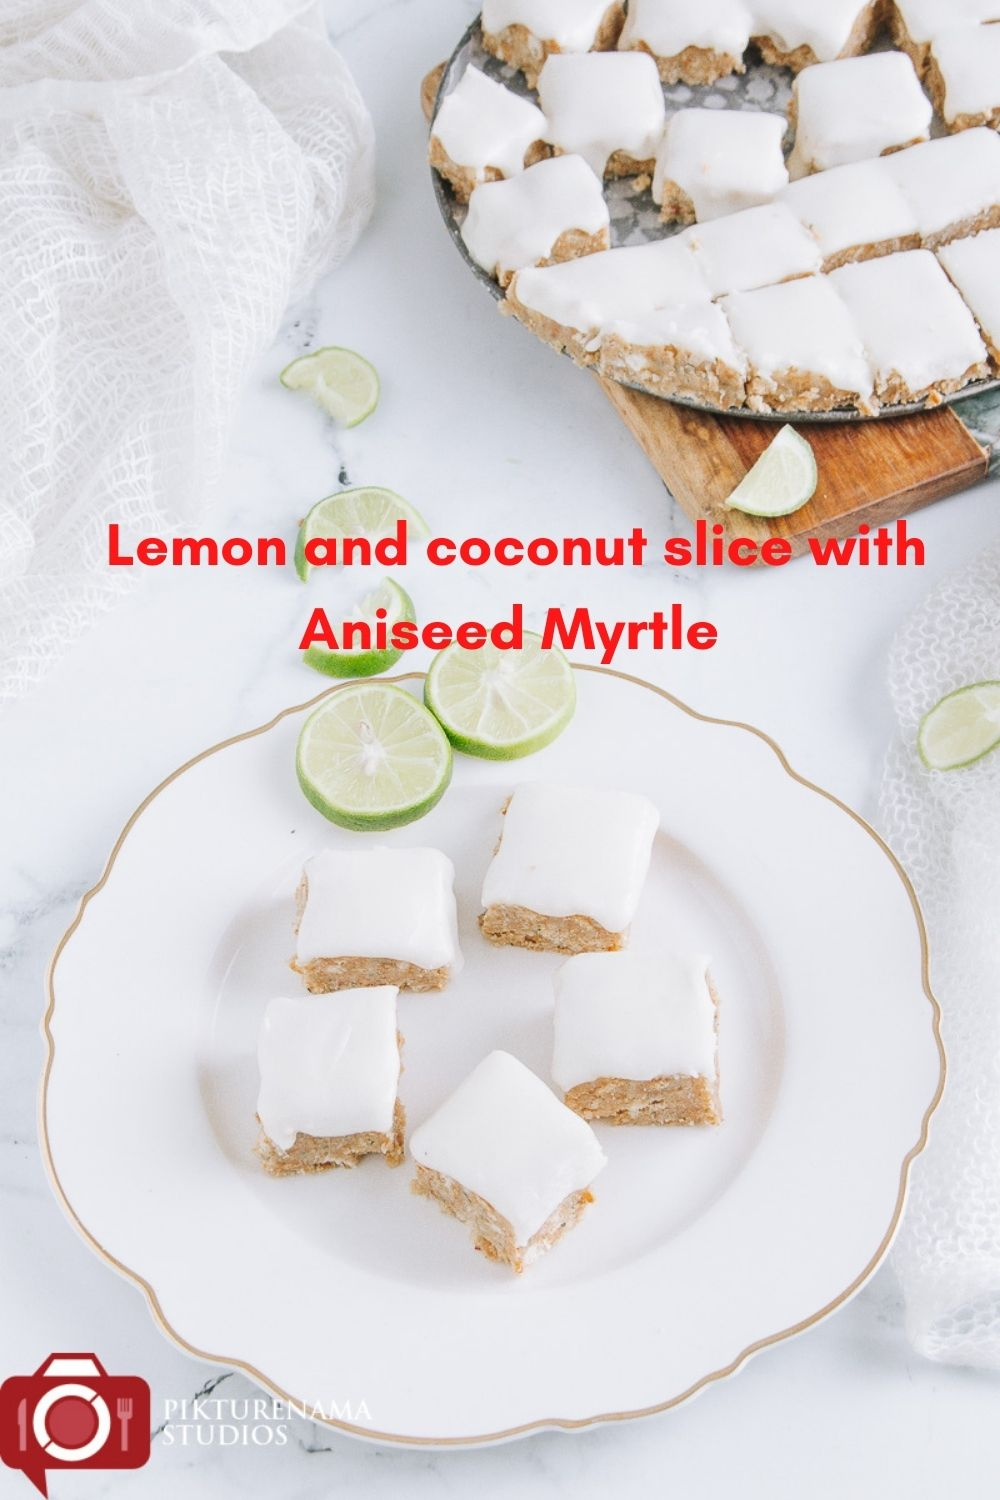 lemon and coconut slice with Aniseed Myrtle for Pinterest